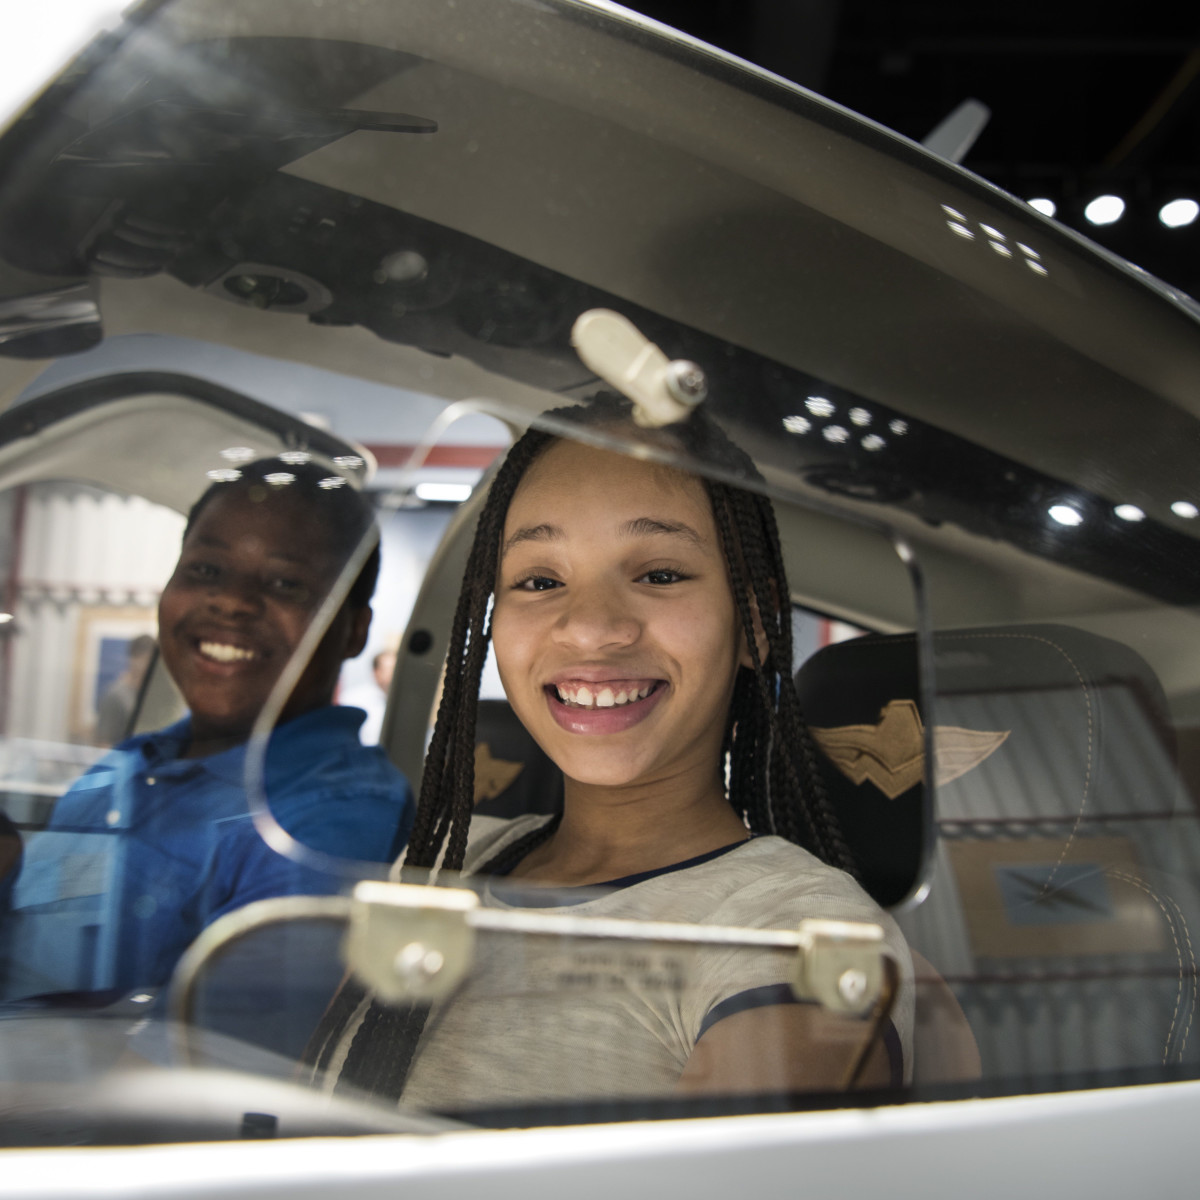 Lone Star Flight Museum visitors in cockpit of airplane